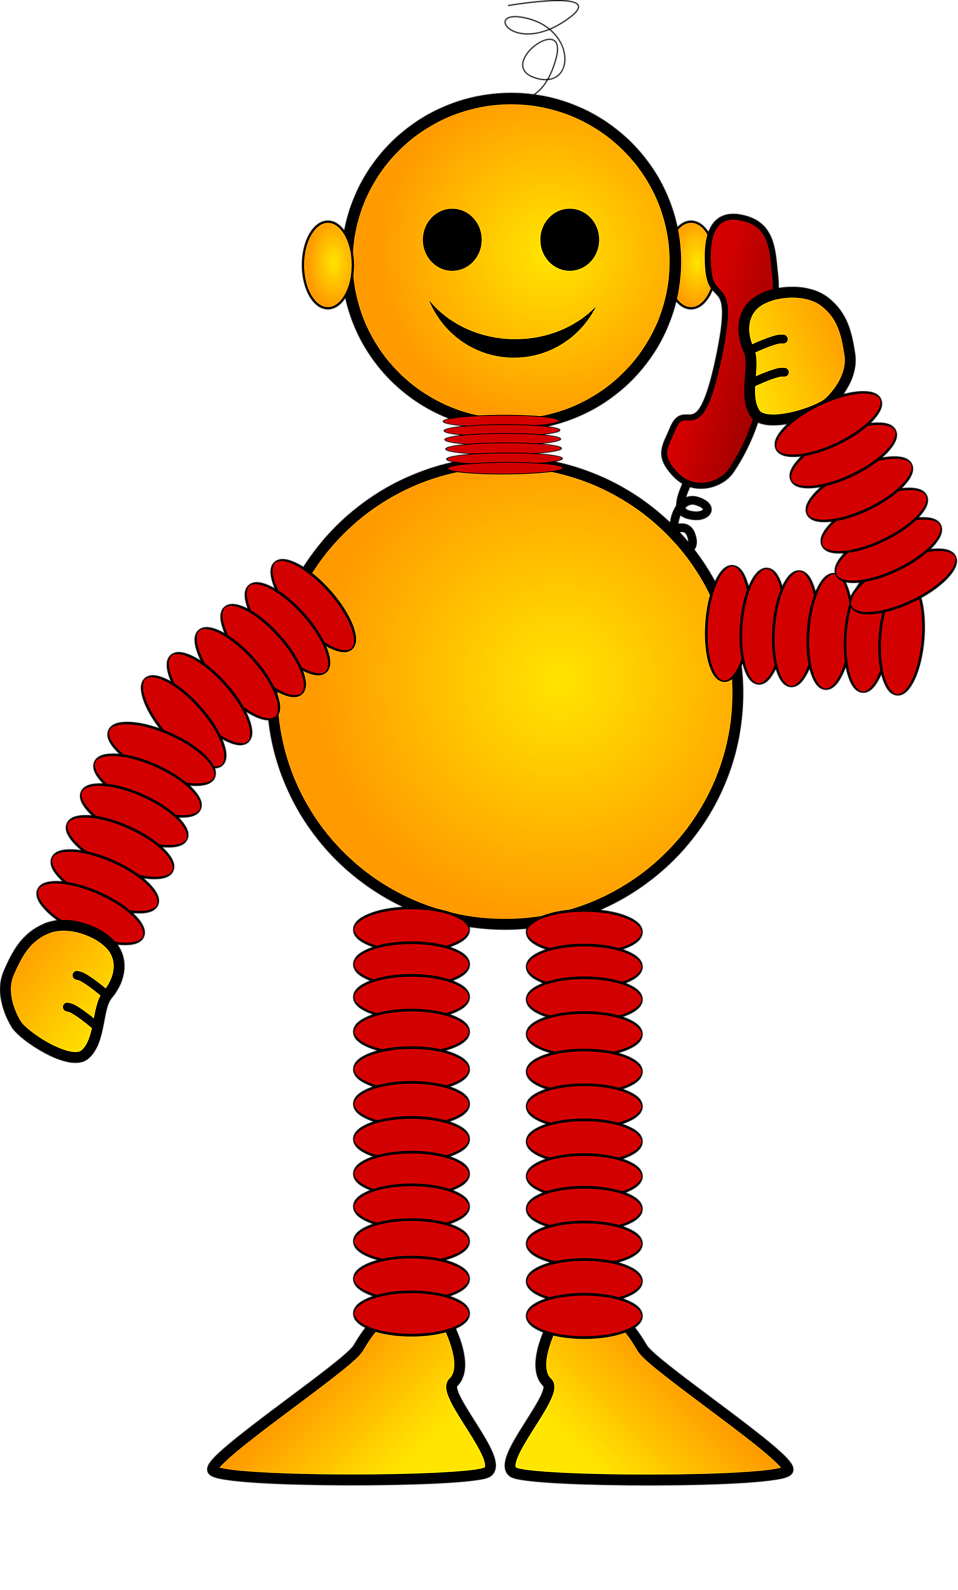 animated robot clipart - photo #36